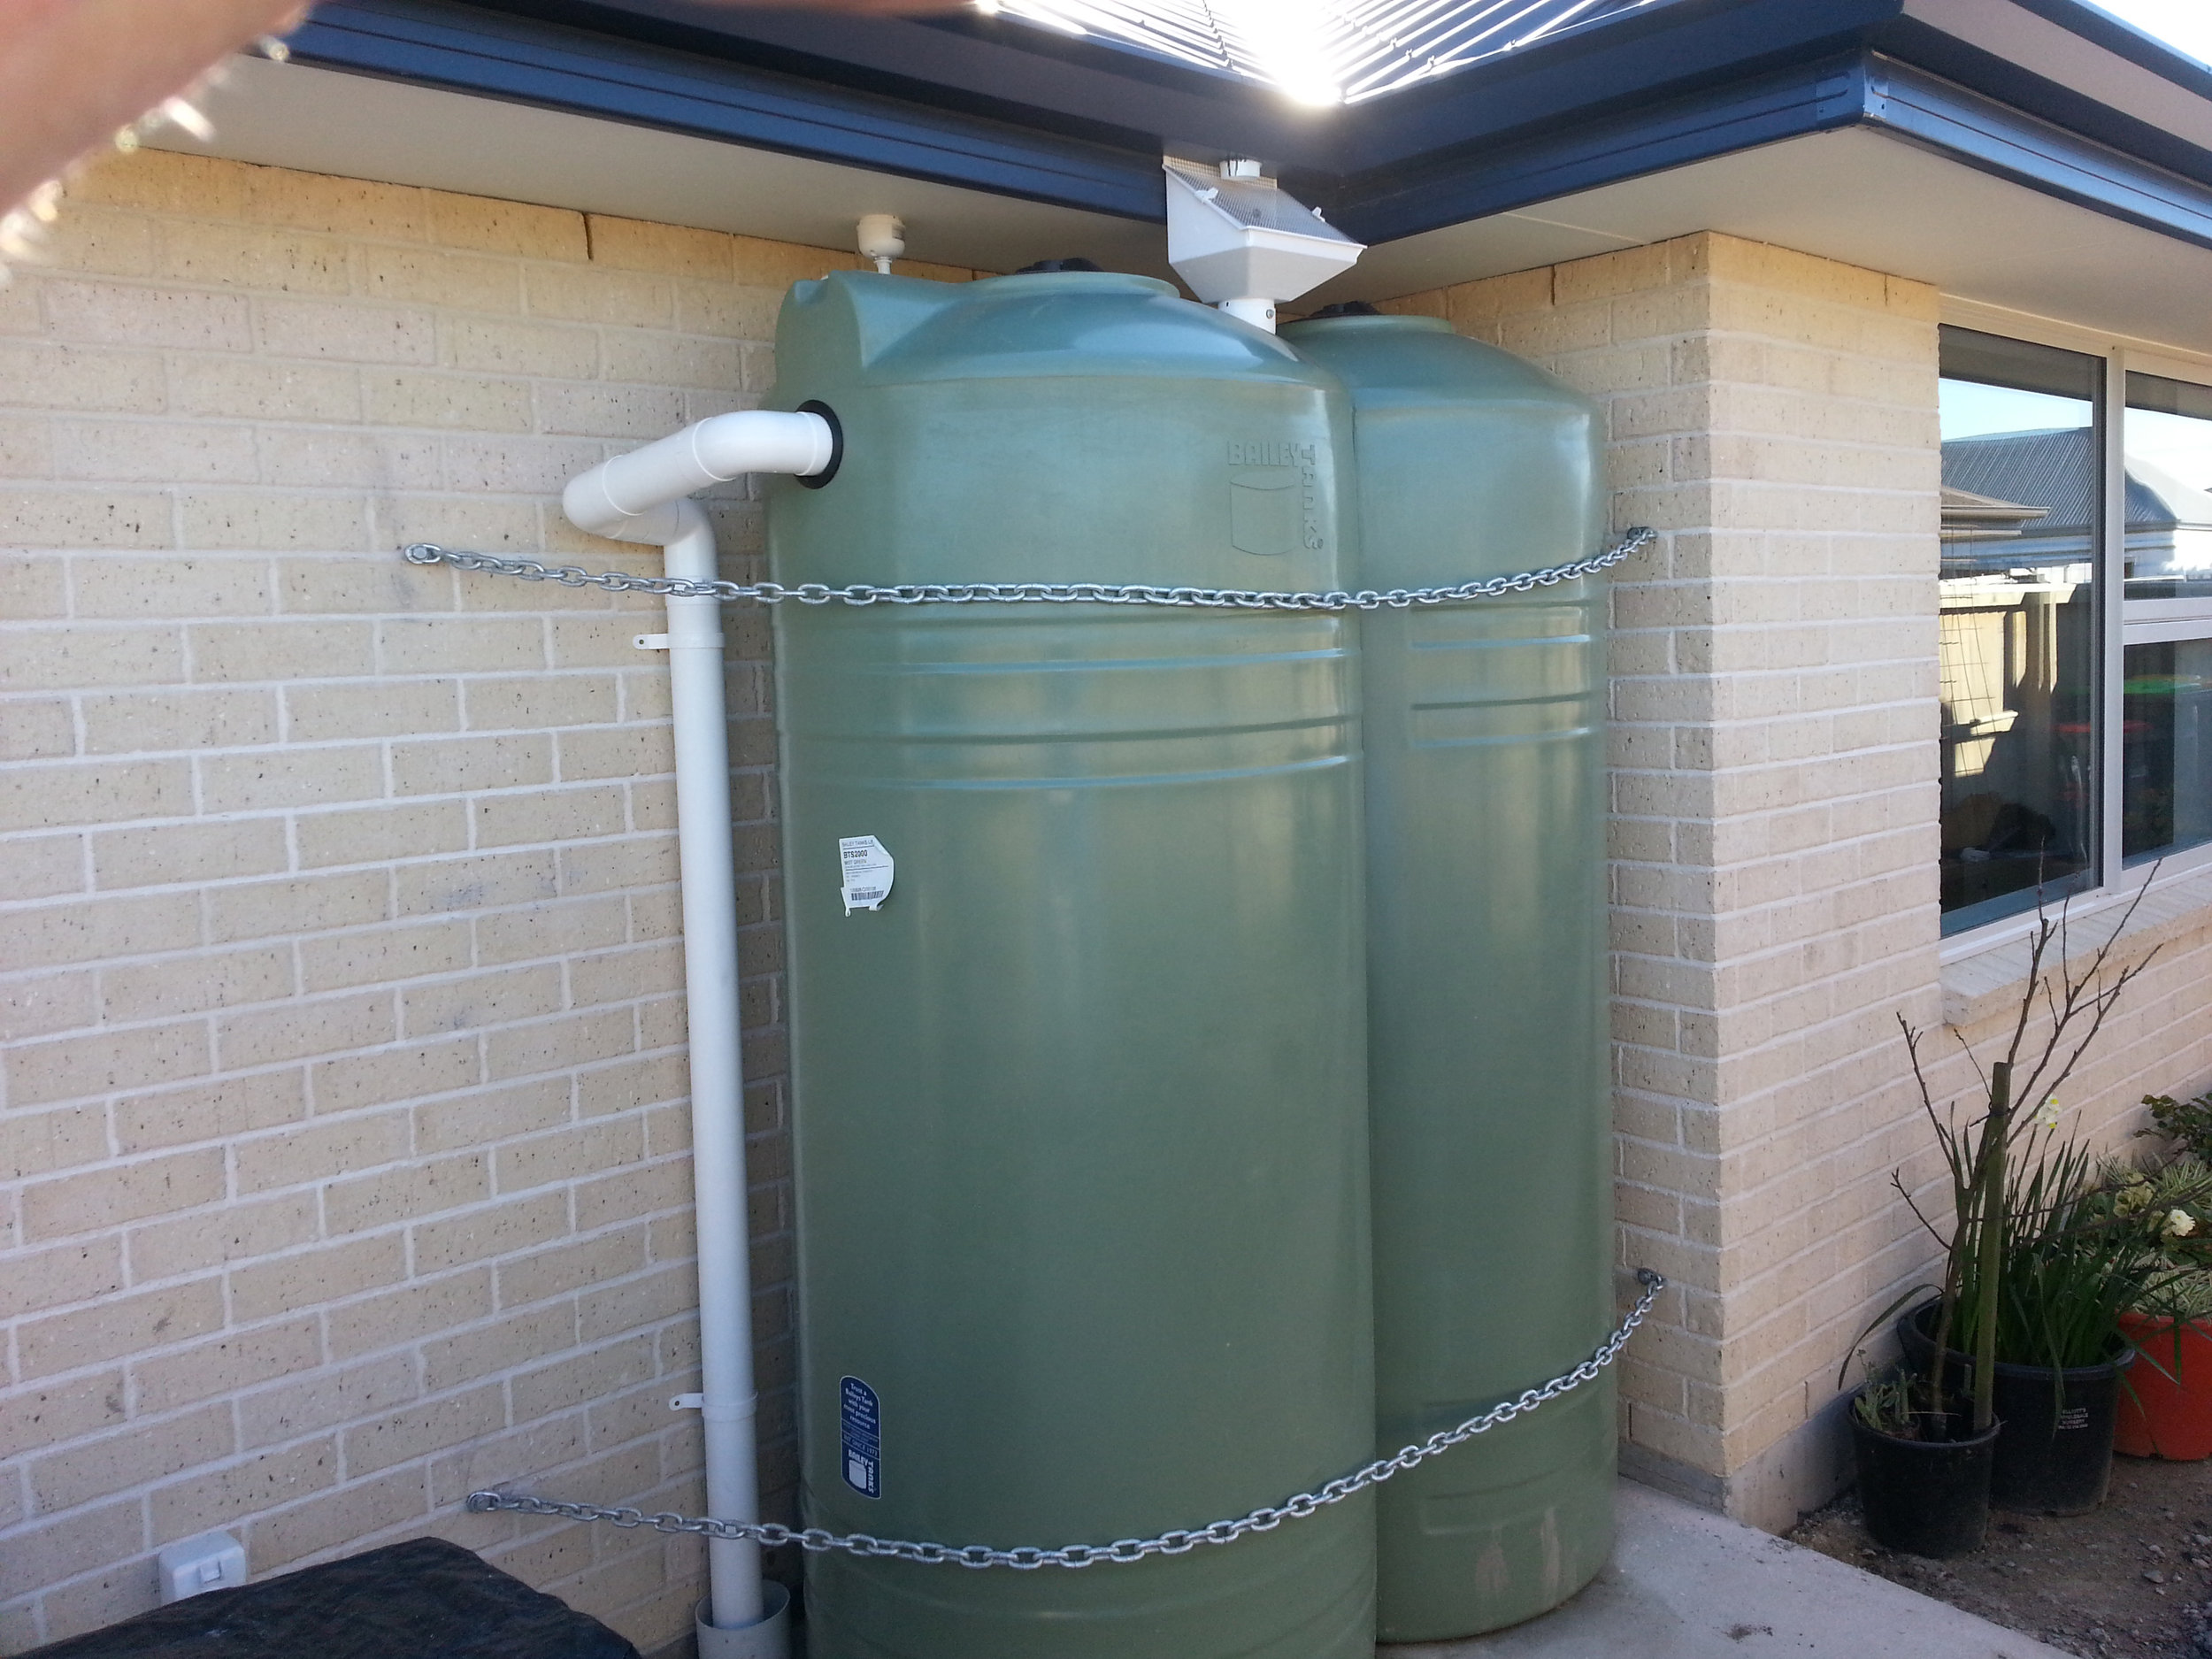 Rainwater catch tanks